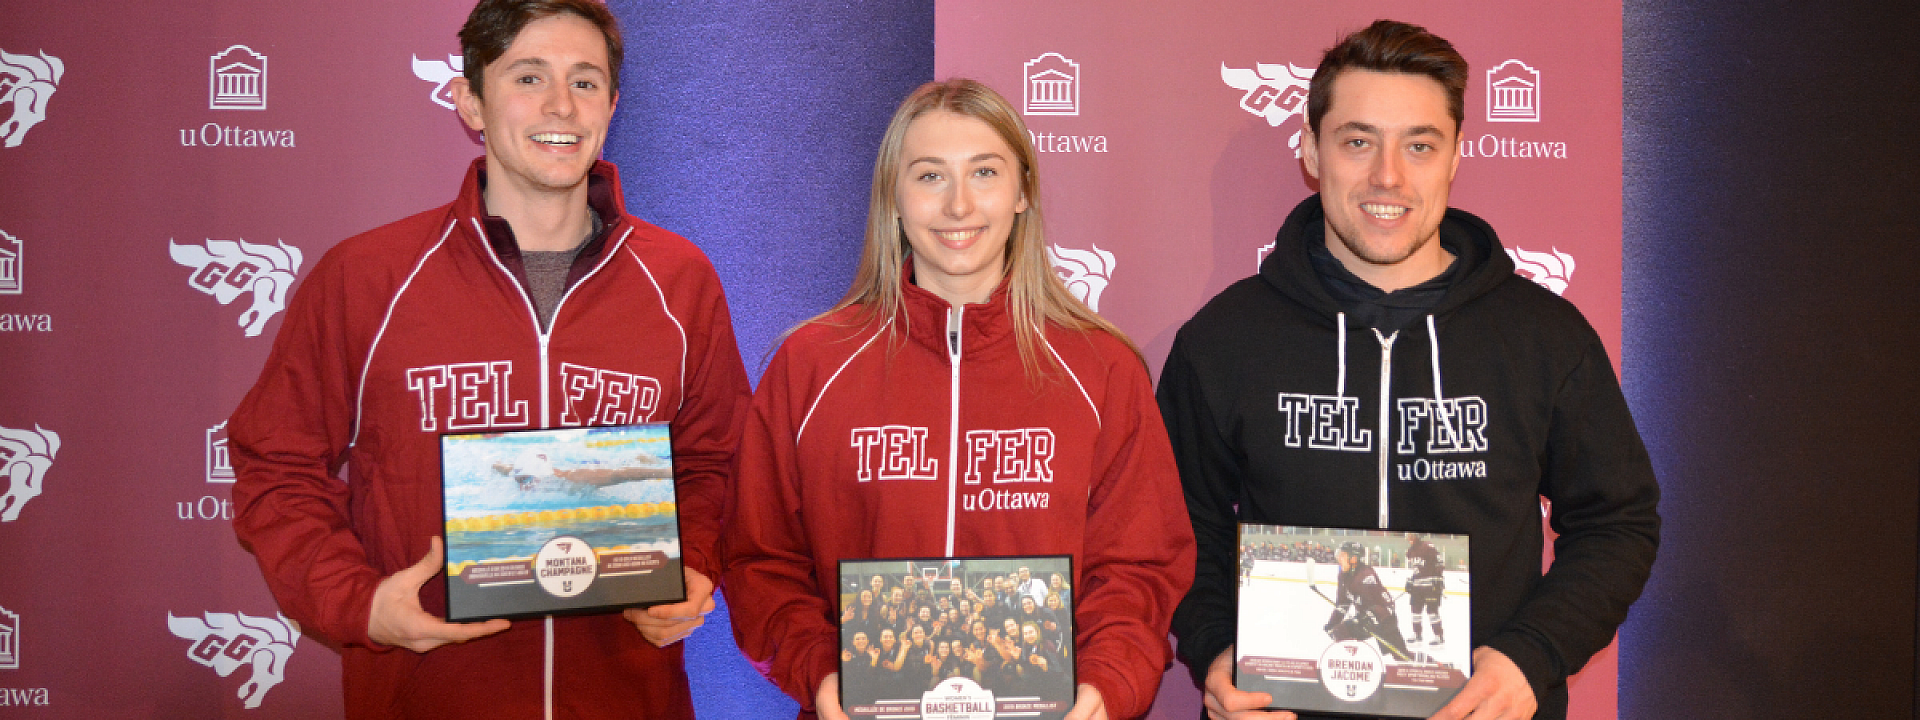 Three Telfer Gee-Gees Laughing while holding their awards